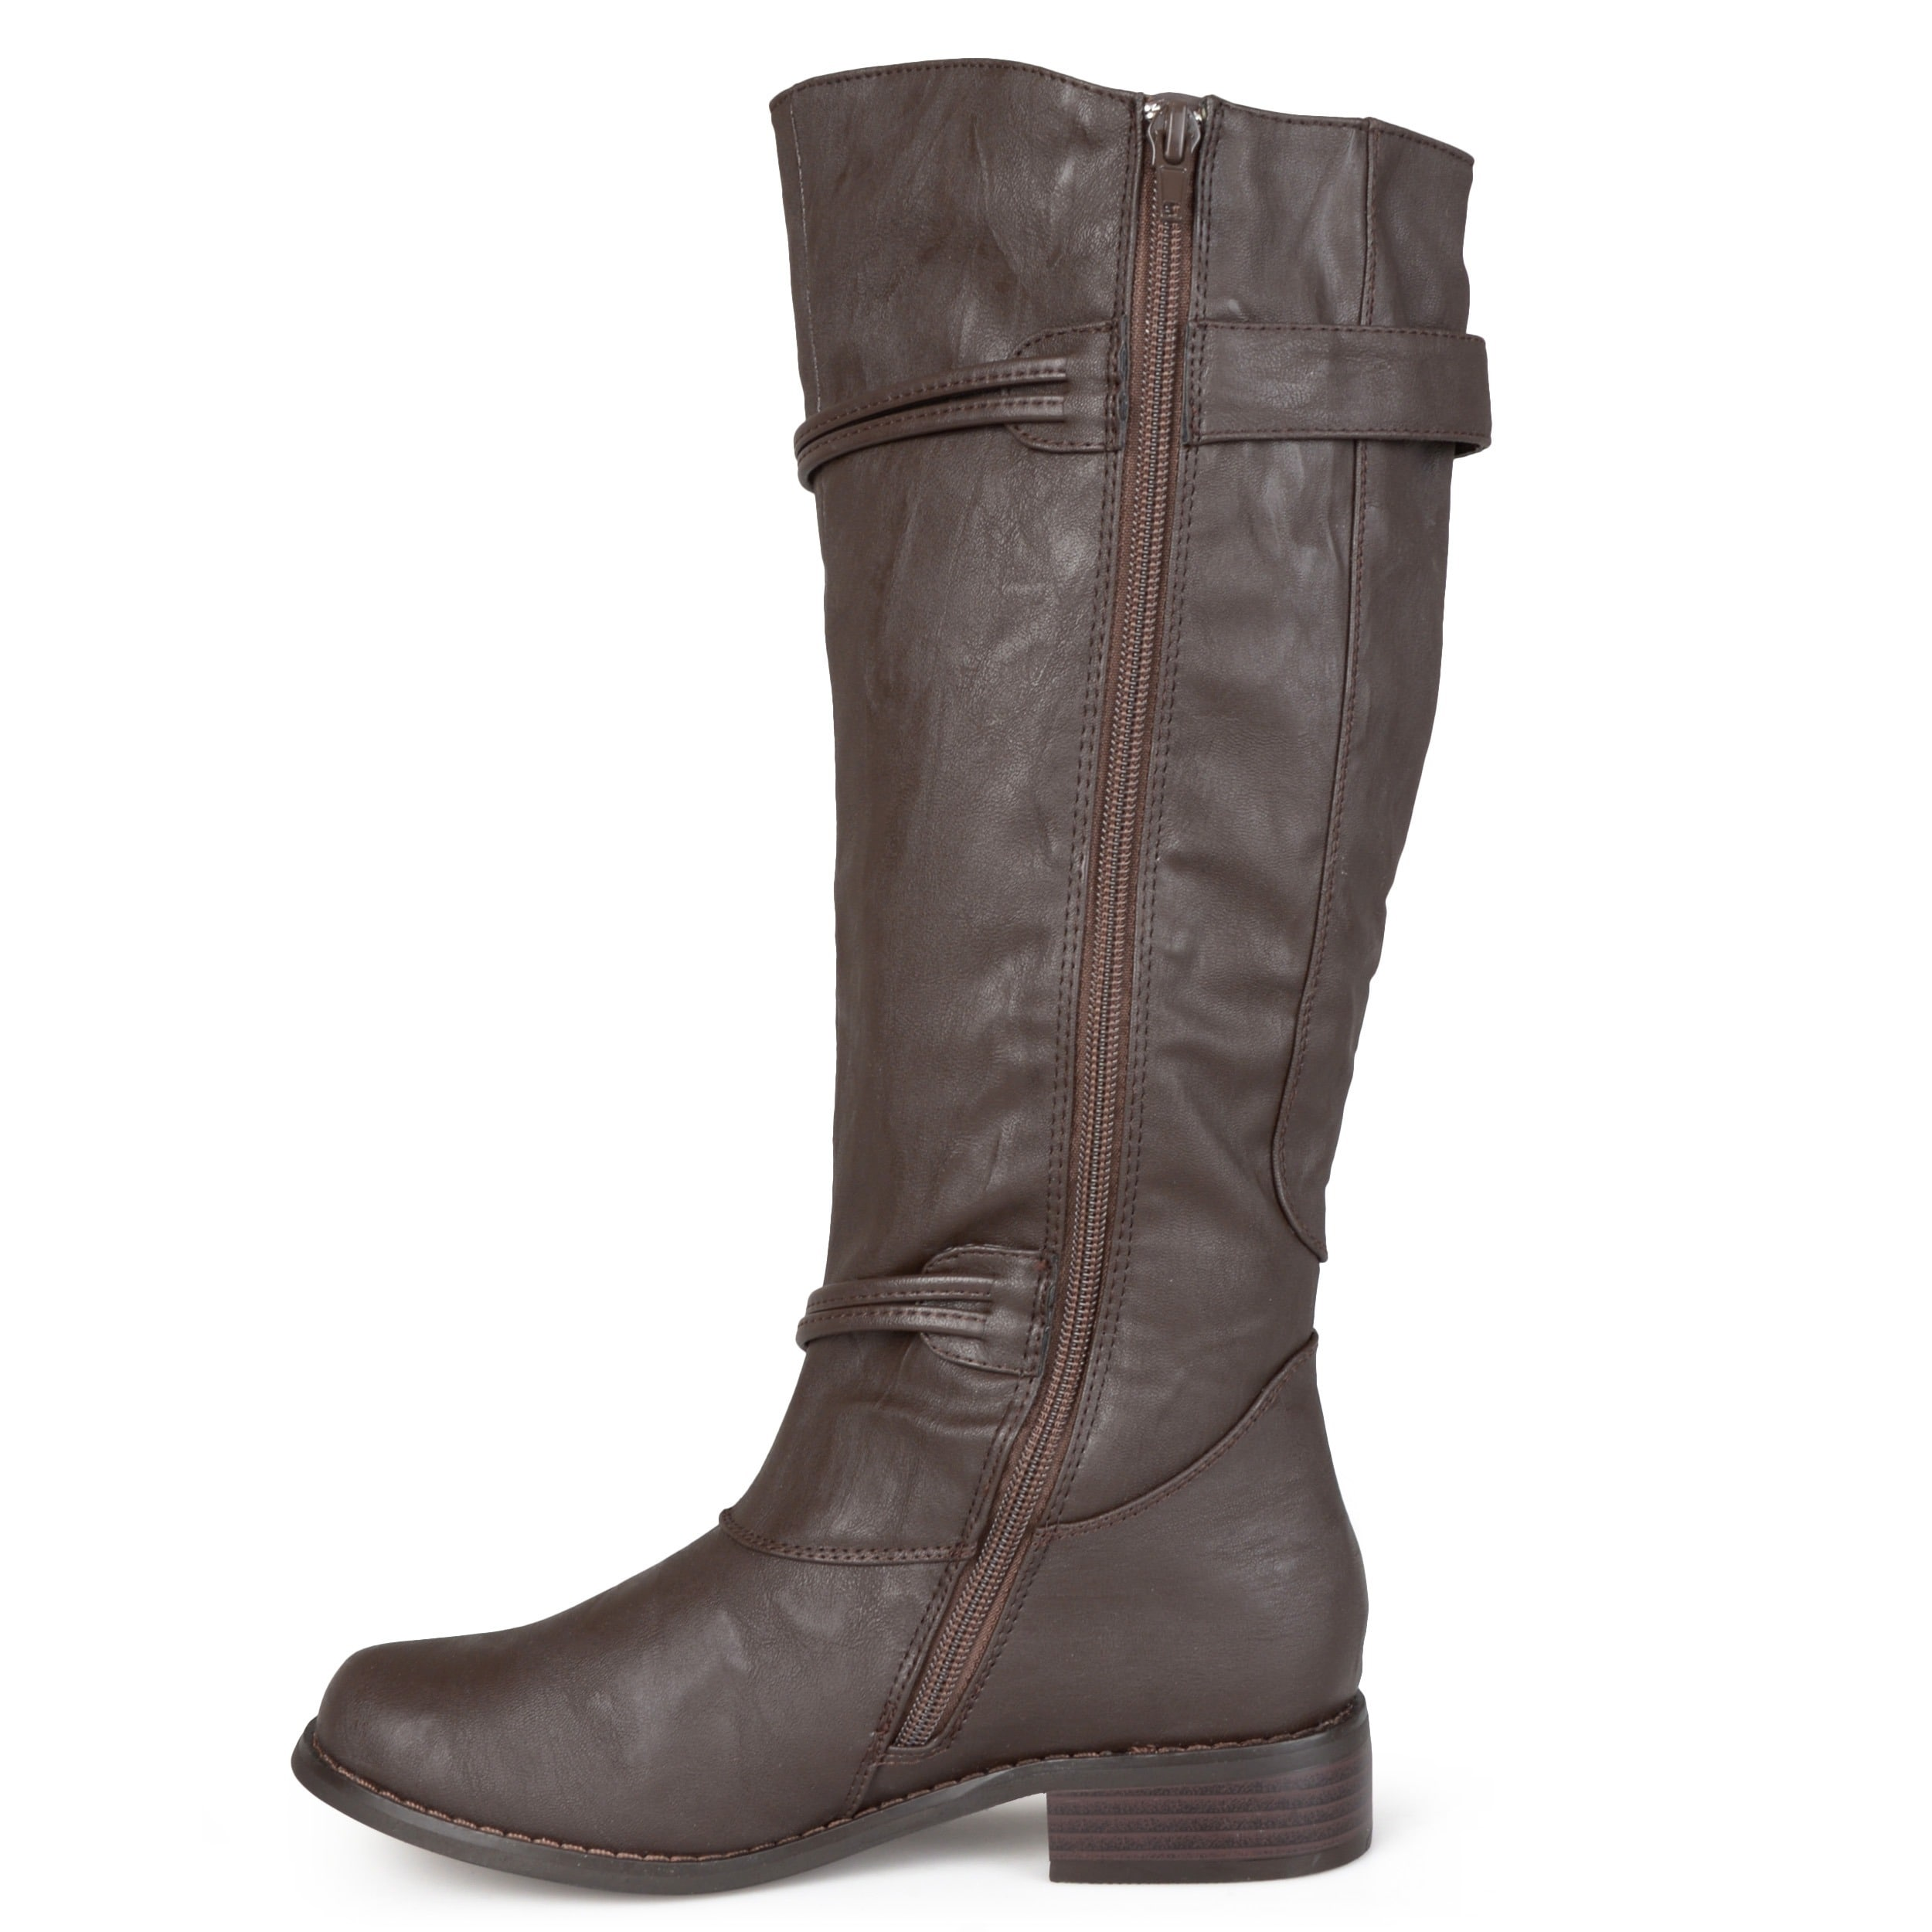 8be9a7262 Shop Journee Collection Women's 'Harley' Regular and Wide-calf Ankle-strap  Buckle Knee-high Riding Boot - Free Shipping Today - Overstock - 5162850